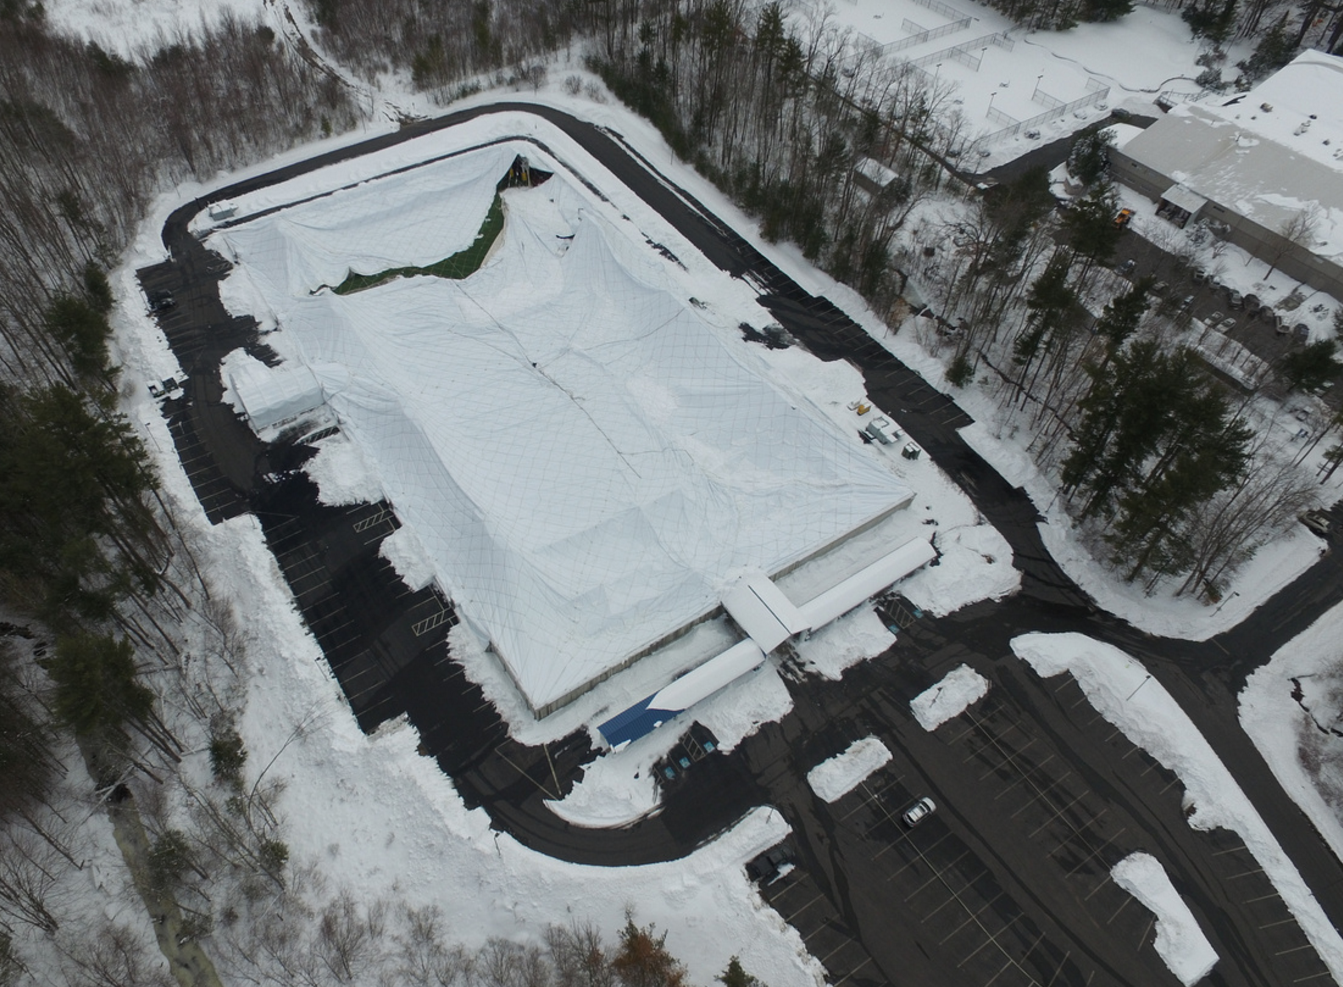 Roof Collapse At Milford Health Club Due To Snow Load On